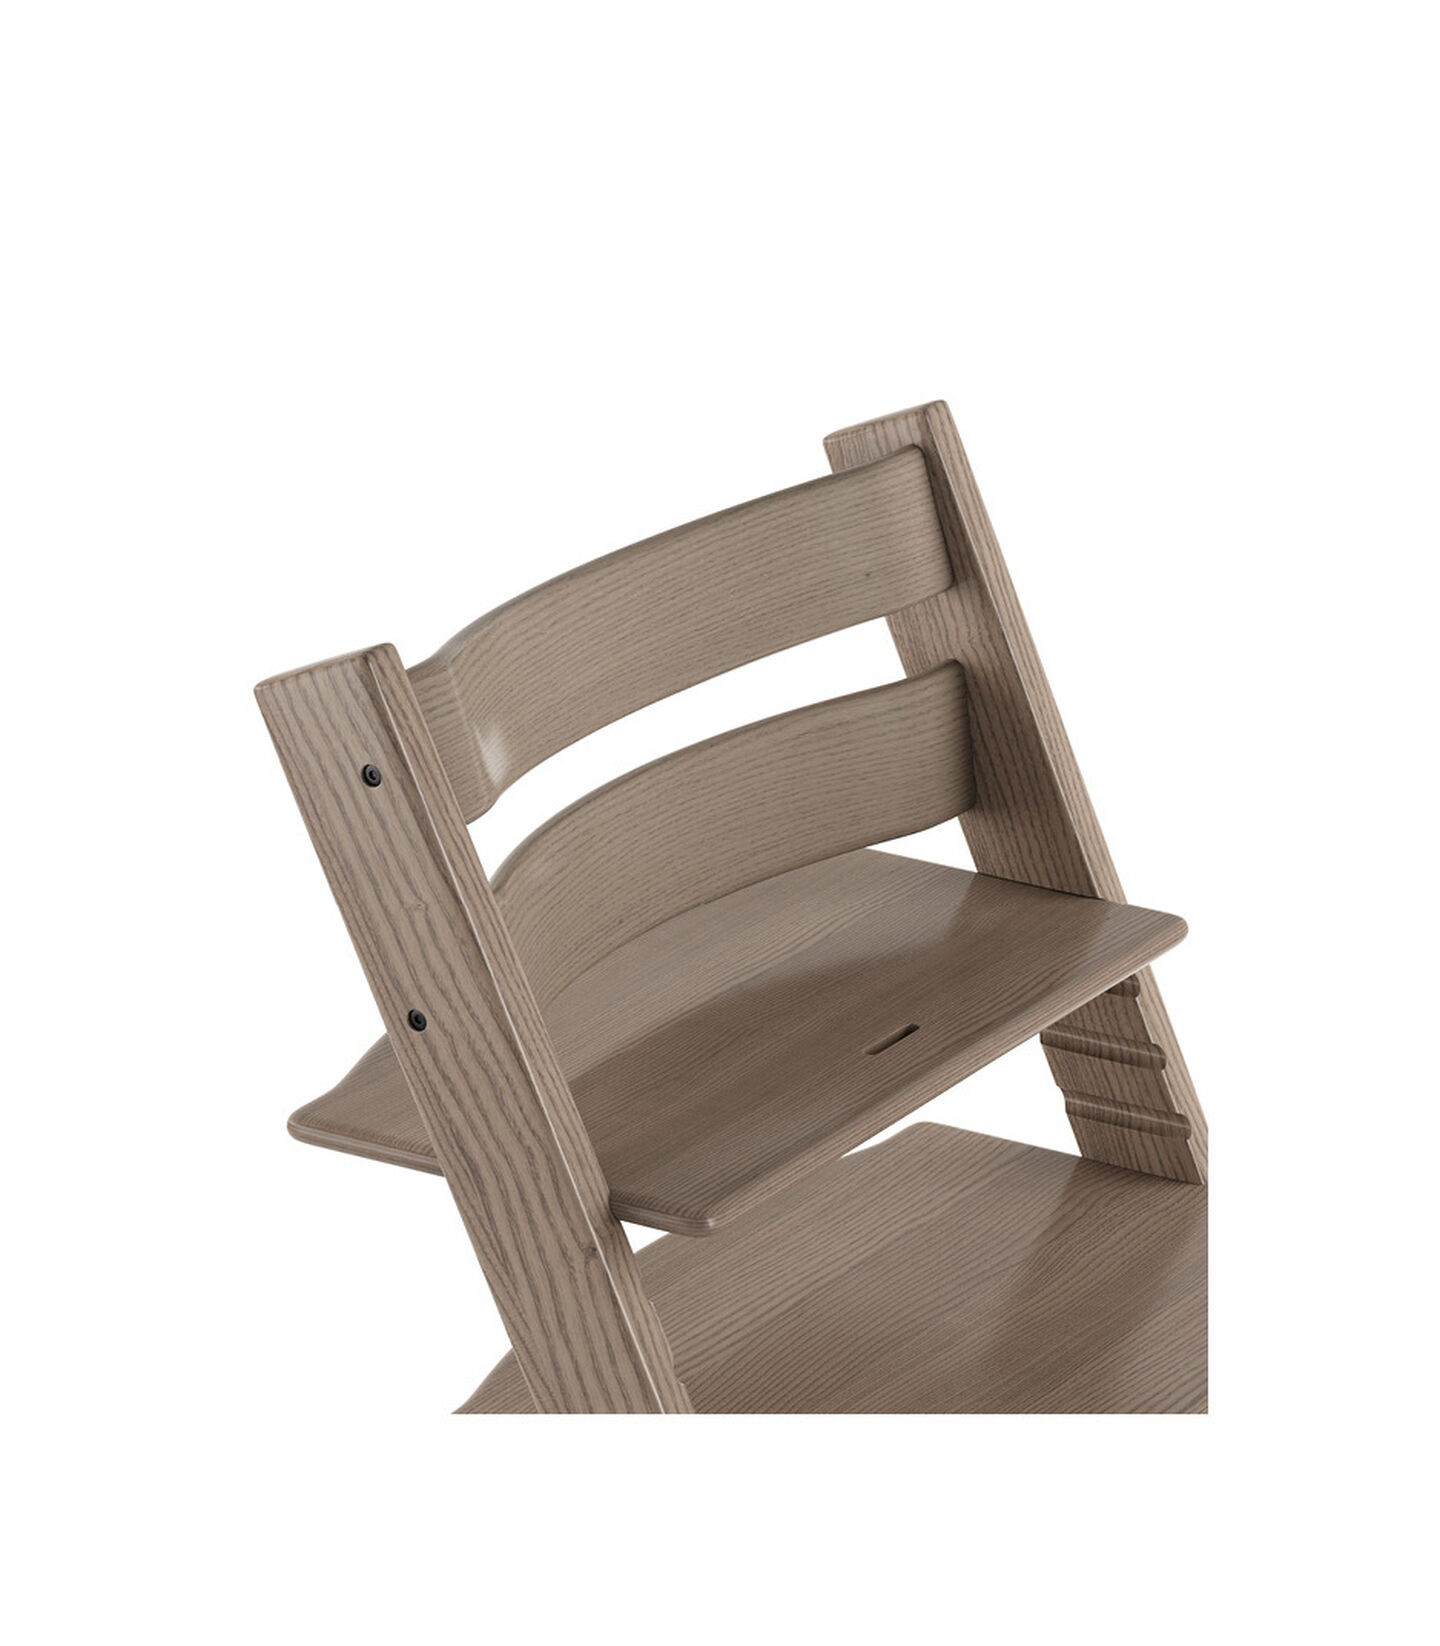 Tripp Trapp® Chair close up 3D rendering Ash